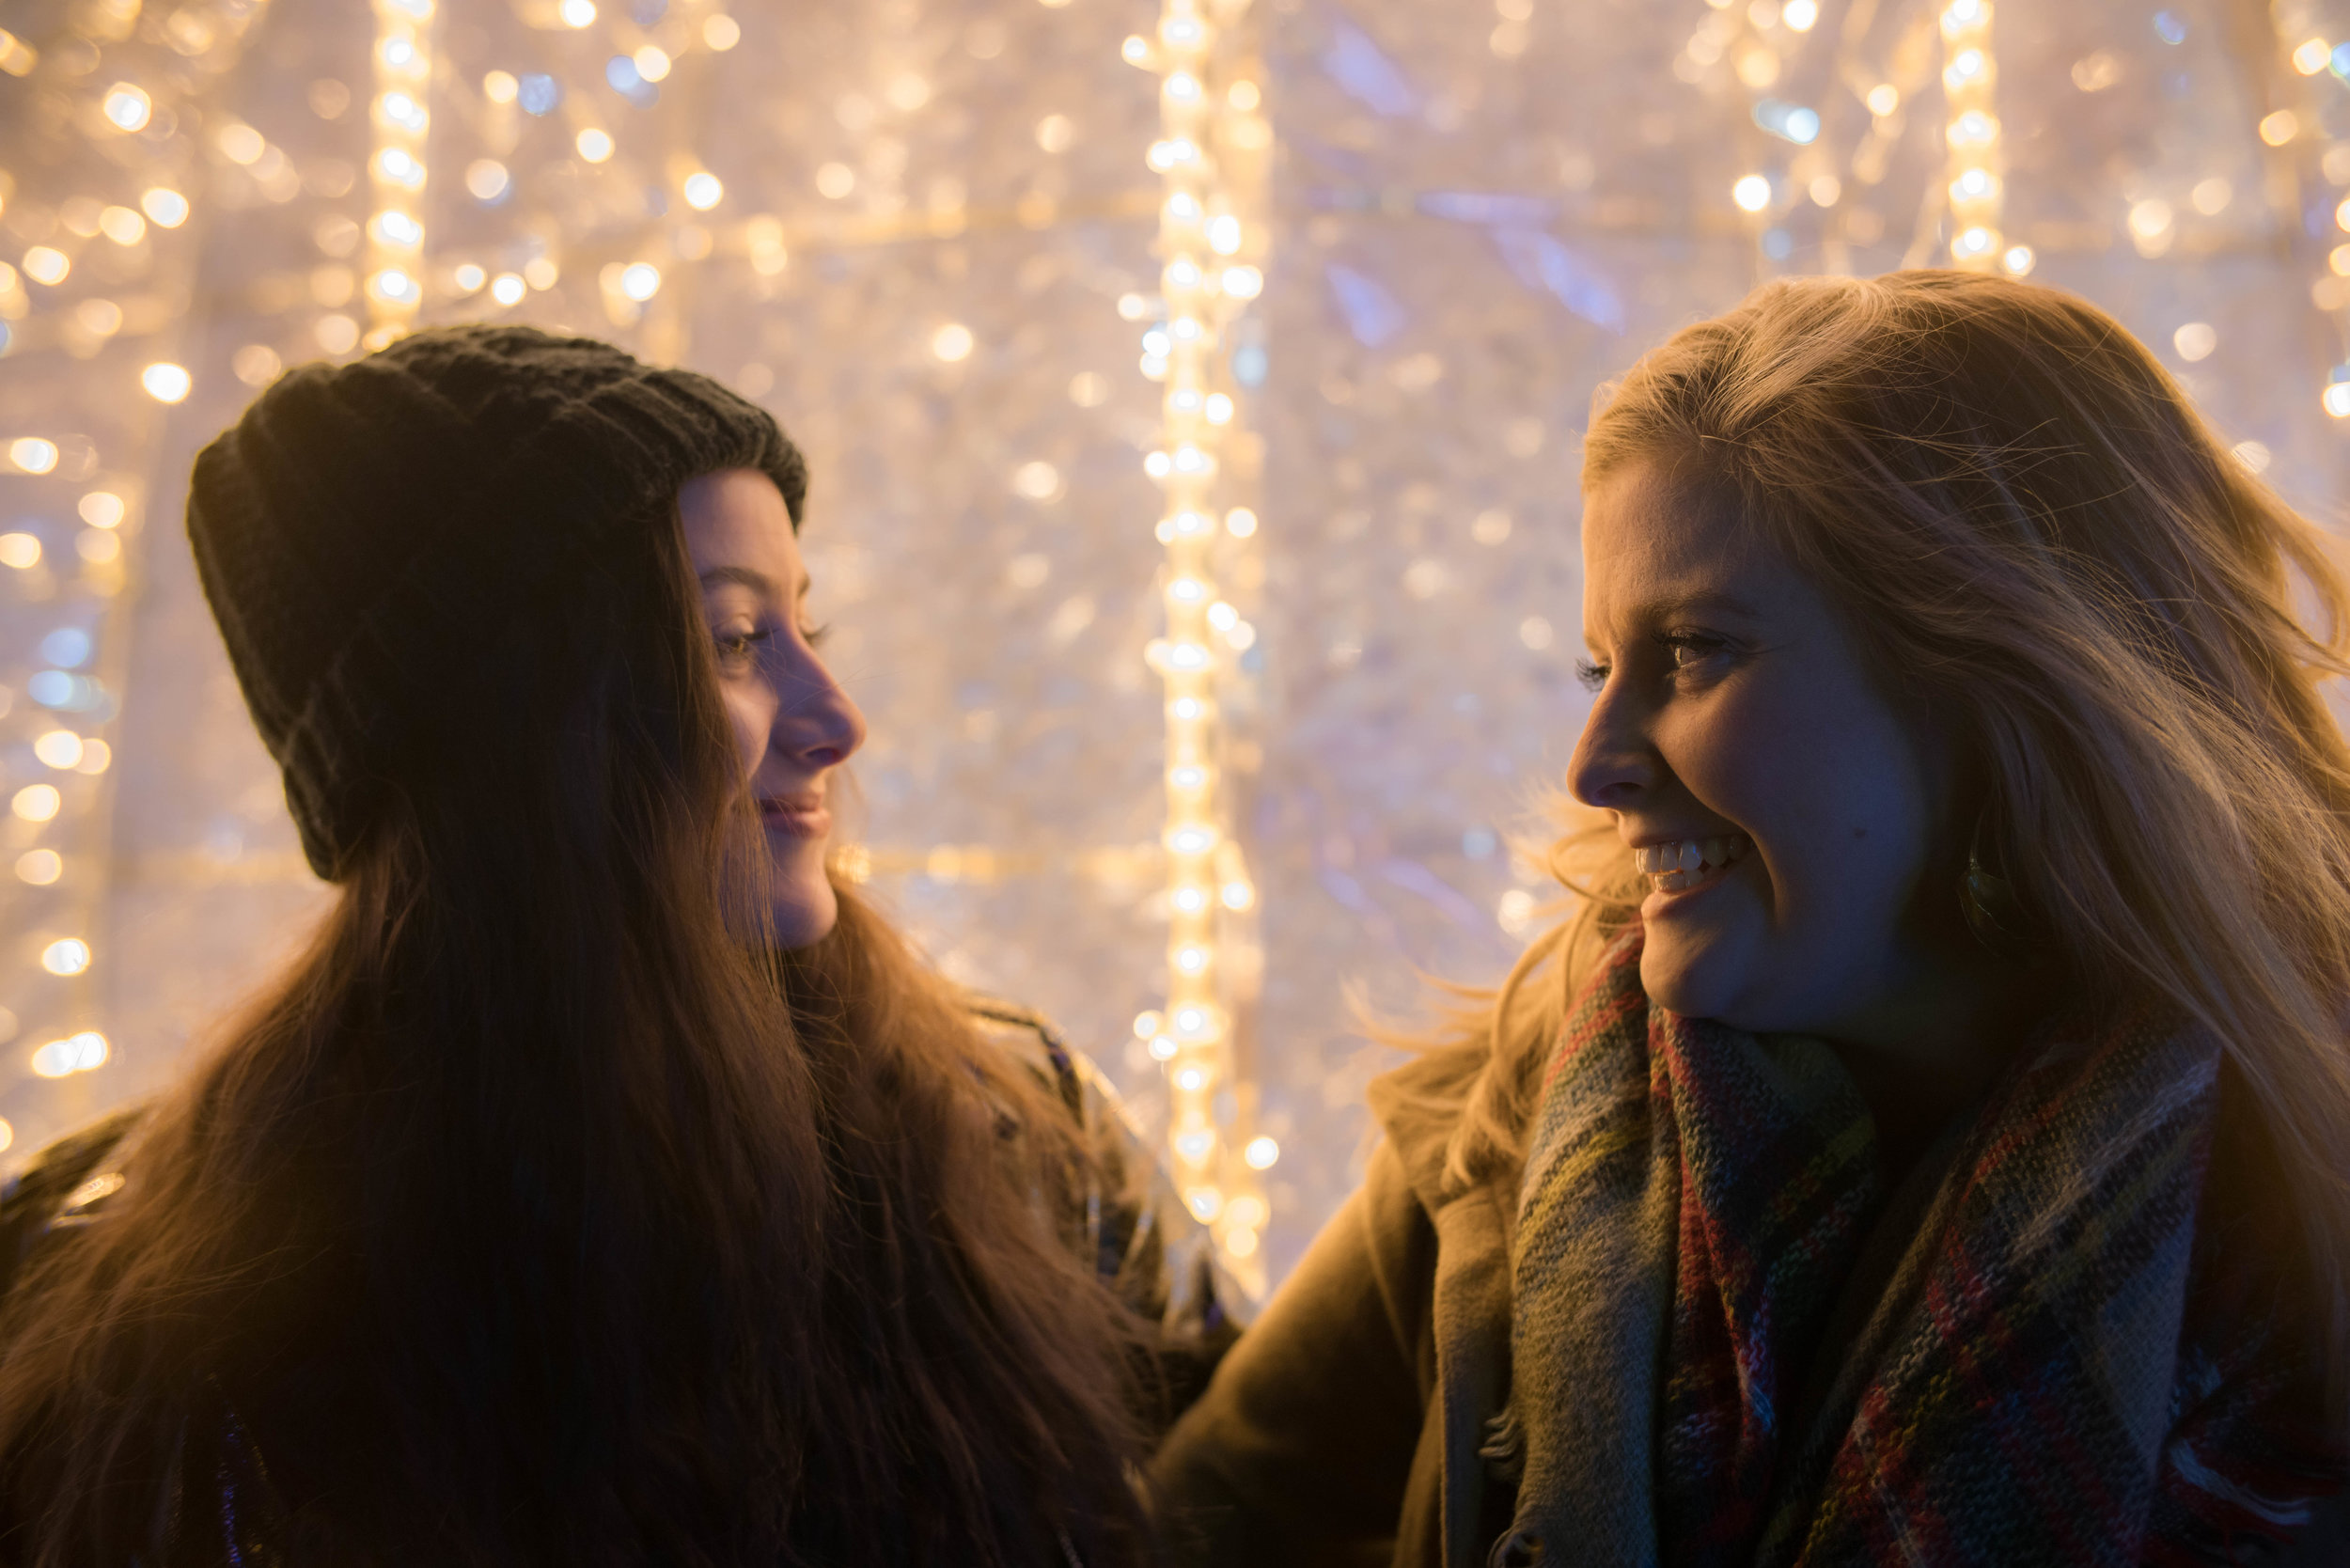 best friends | wonder | detroit photoshoot | holiday photo | holiday photoshoot | winter wonderland photo | christmas light photo | holiday bokeh | holiday mini session | christmas in detroit | kboothmedia